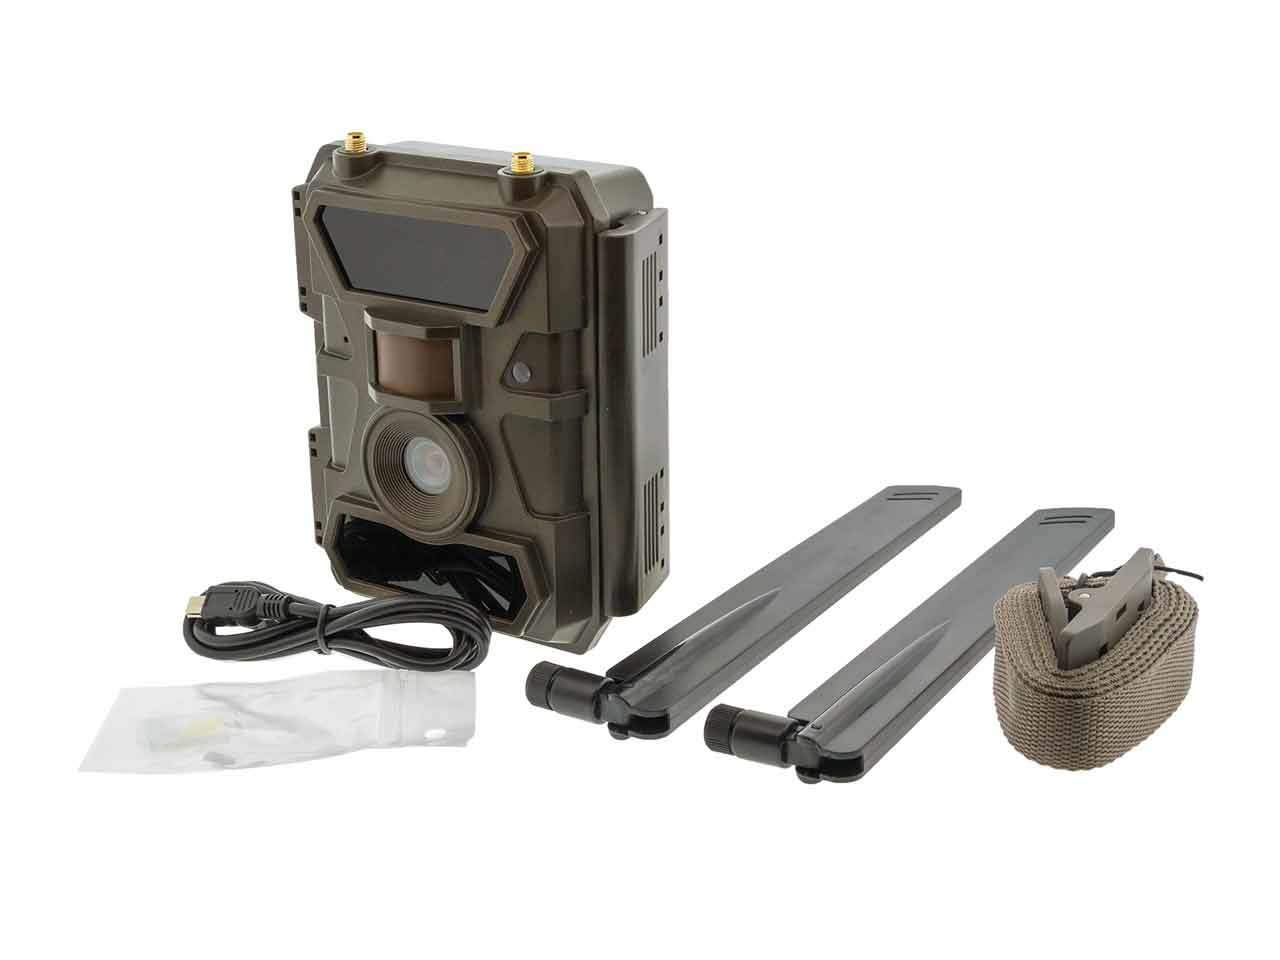 Remote Scout Cellular 4G Outdoor Camera - 4G Trail Camera - Security Camera - No Local Internet Required!